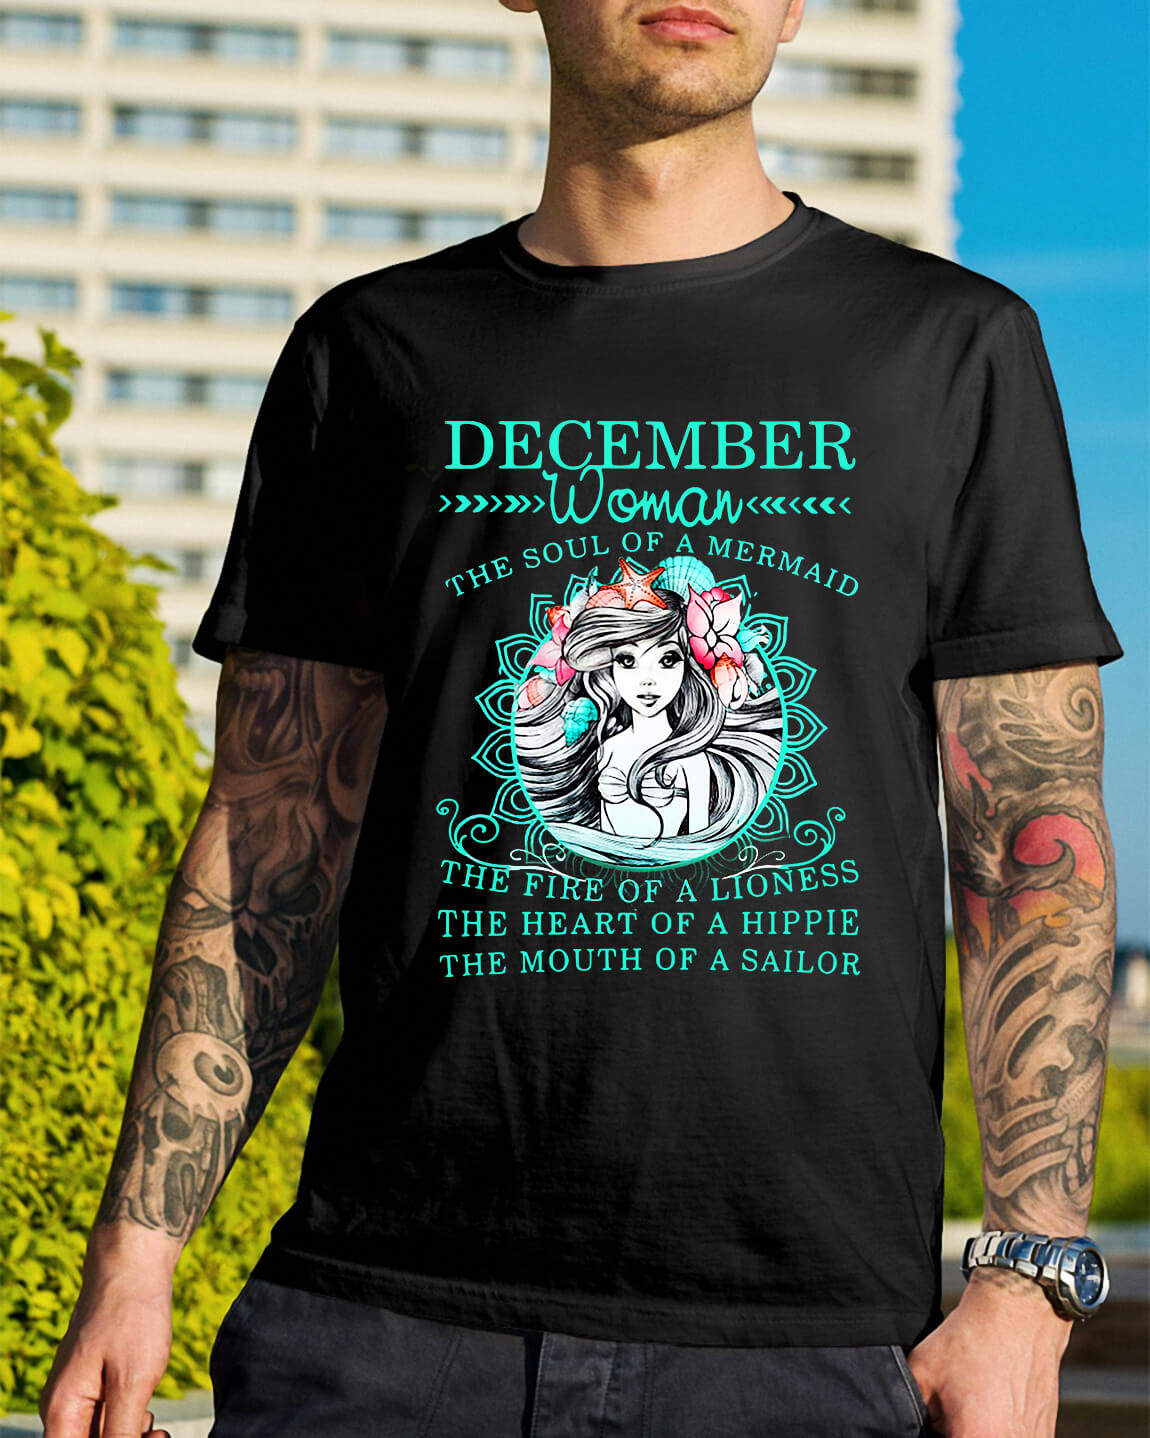 5d35aa7a December woman the soul of a mermaid the fire of a lioness shirt